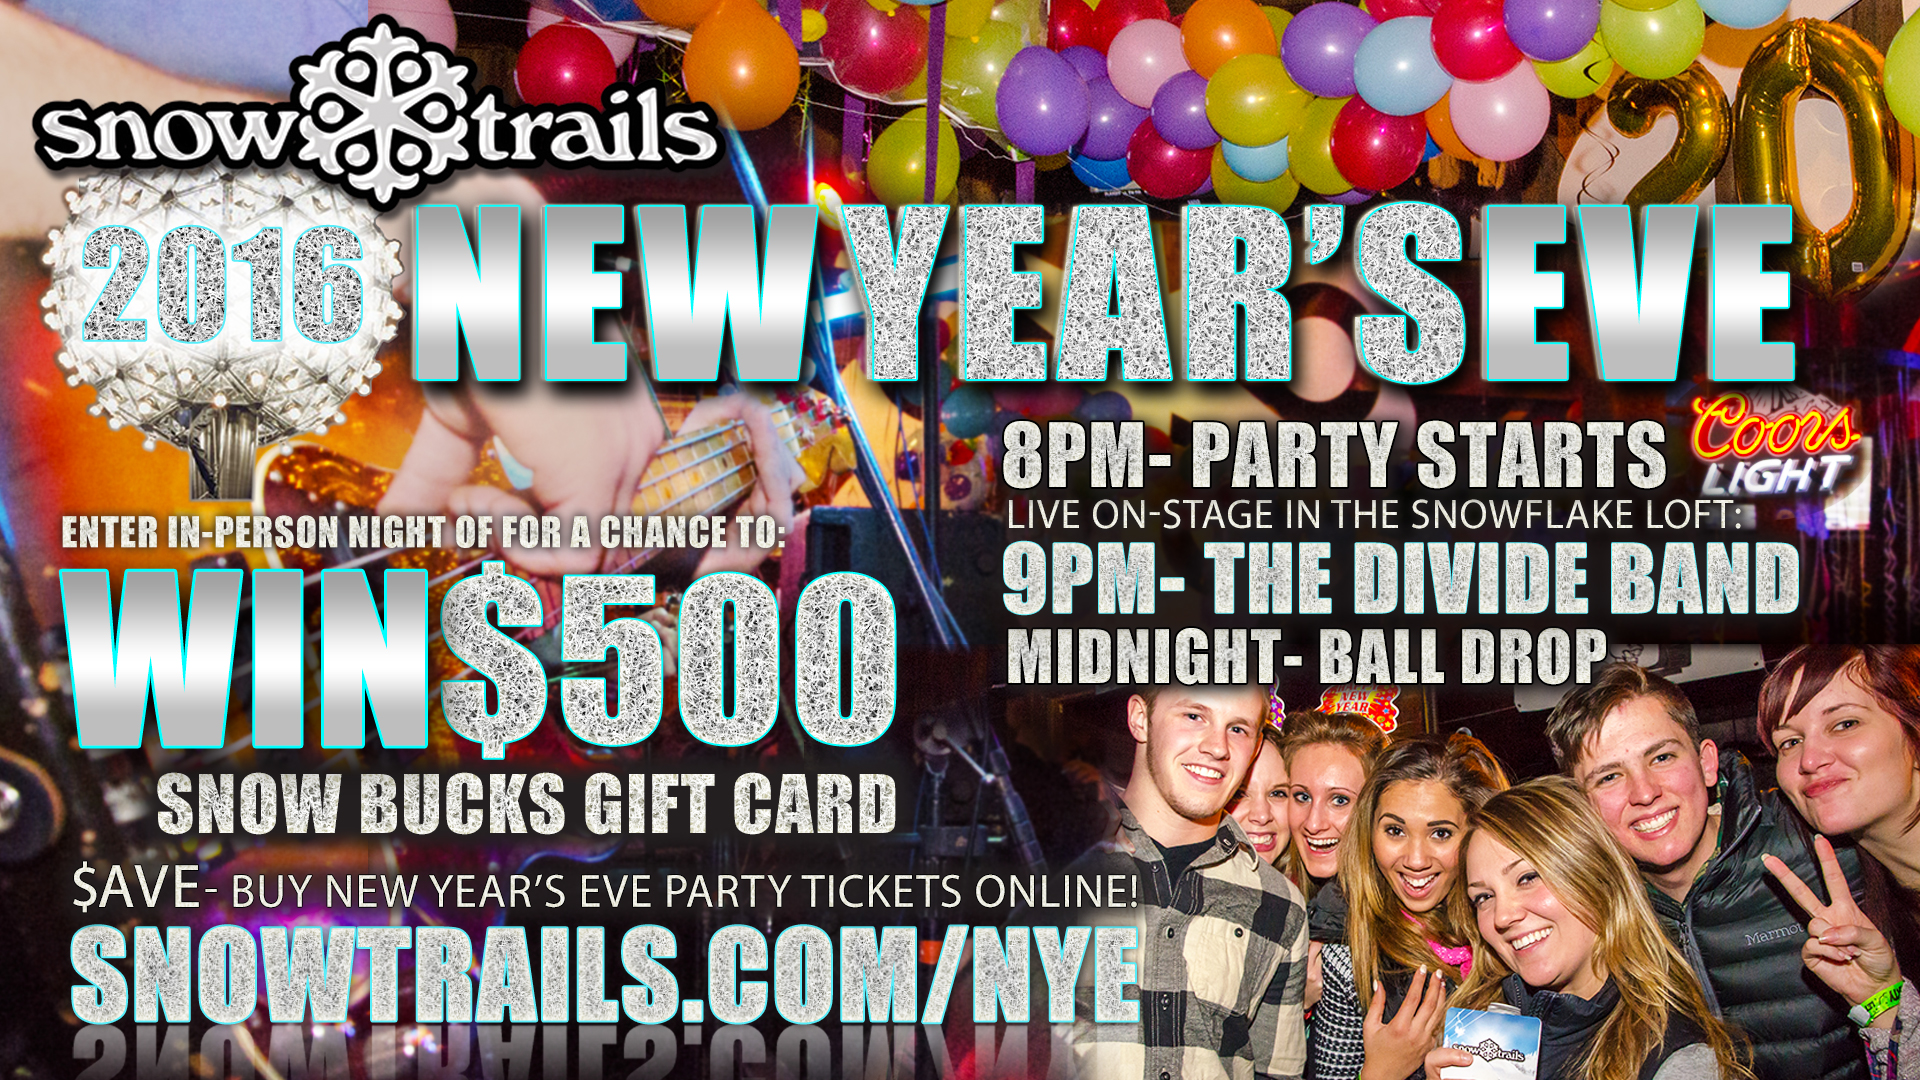 Coors Light New Year's Eve Party at Snow Trails